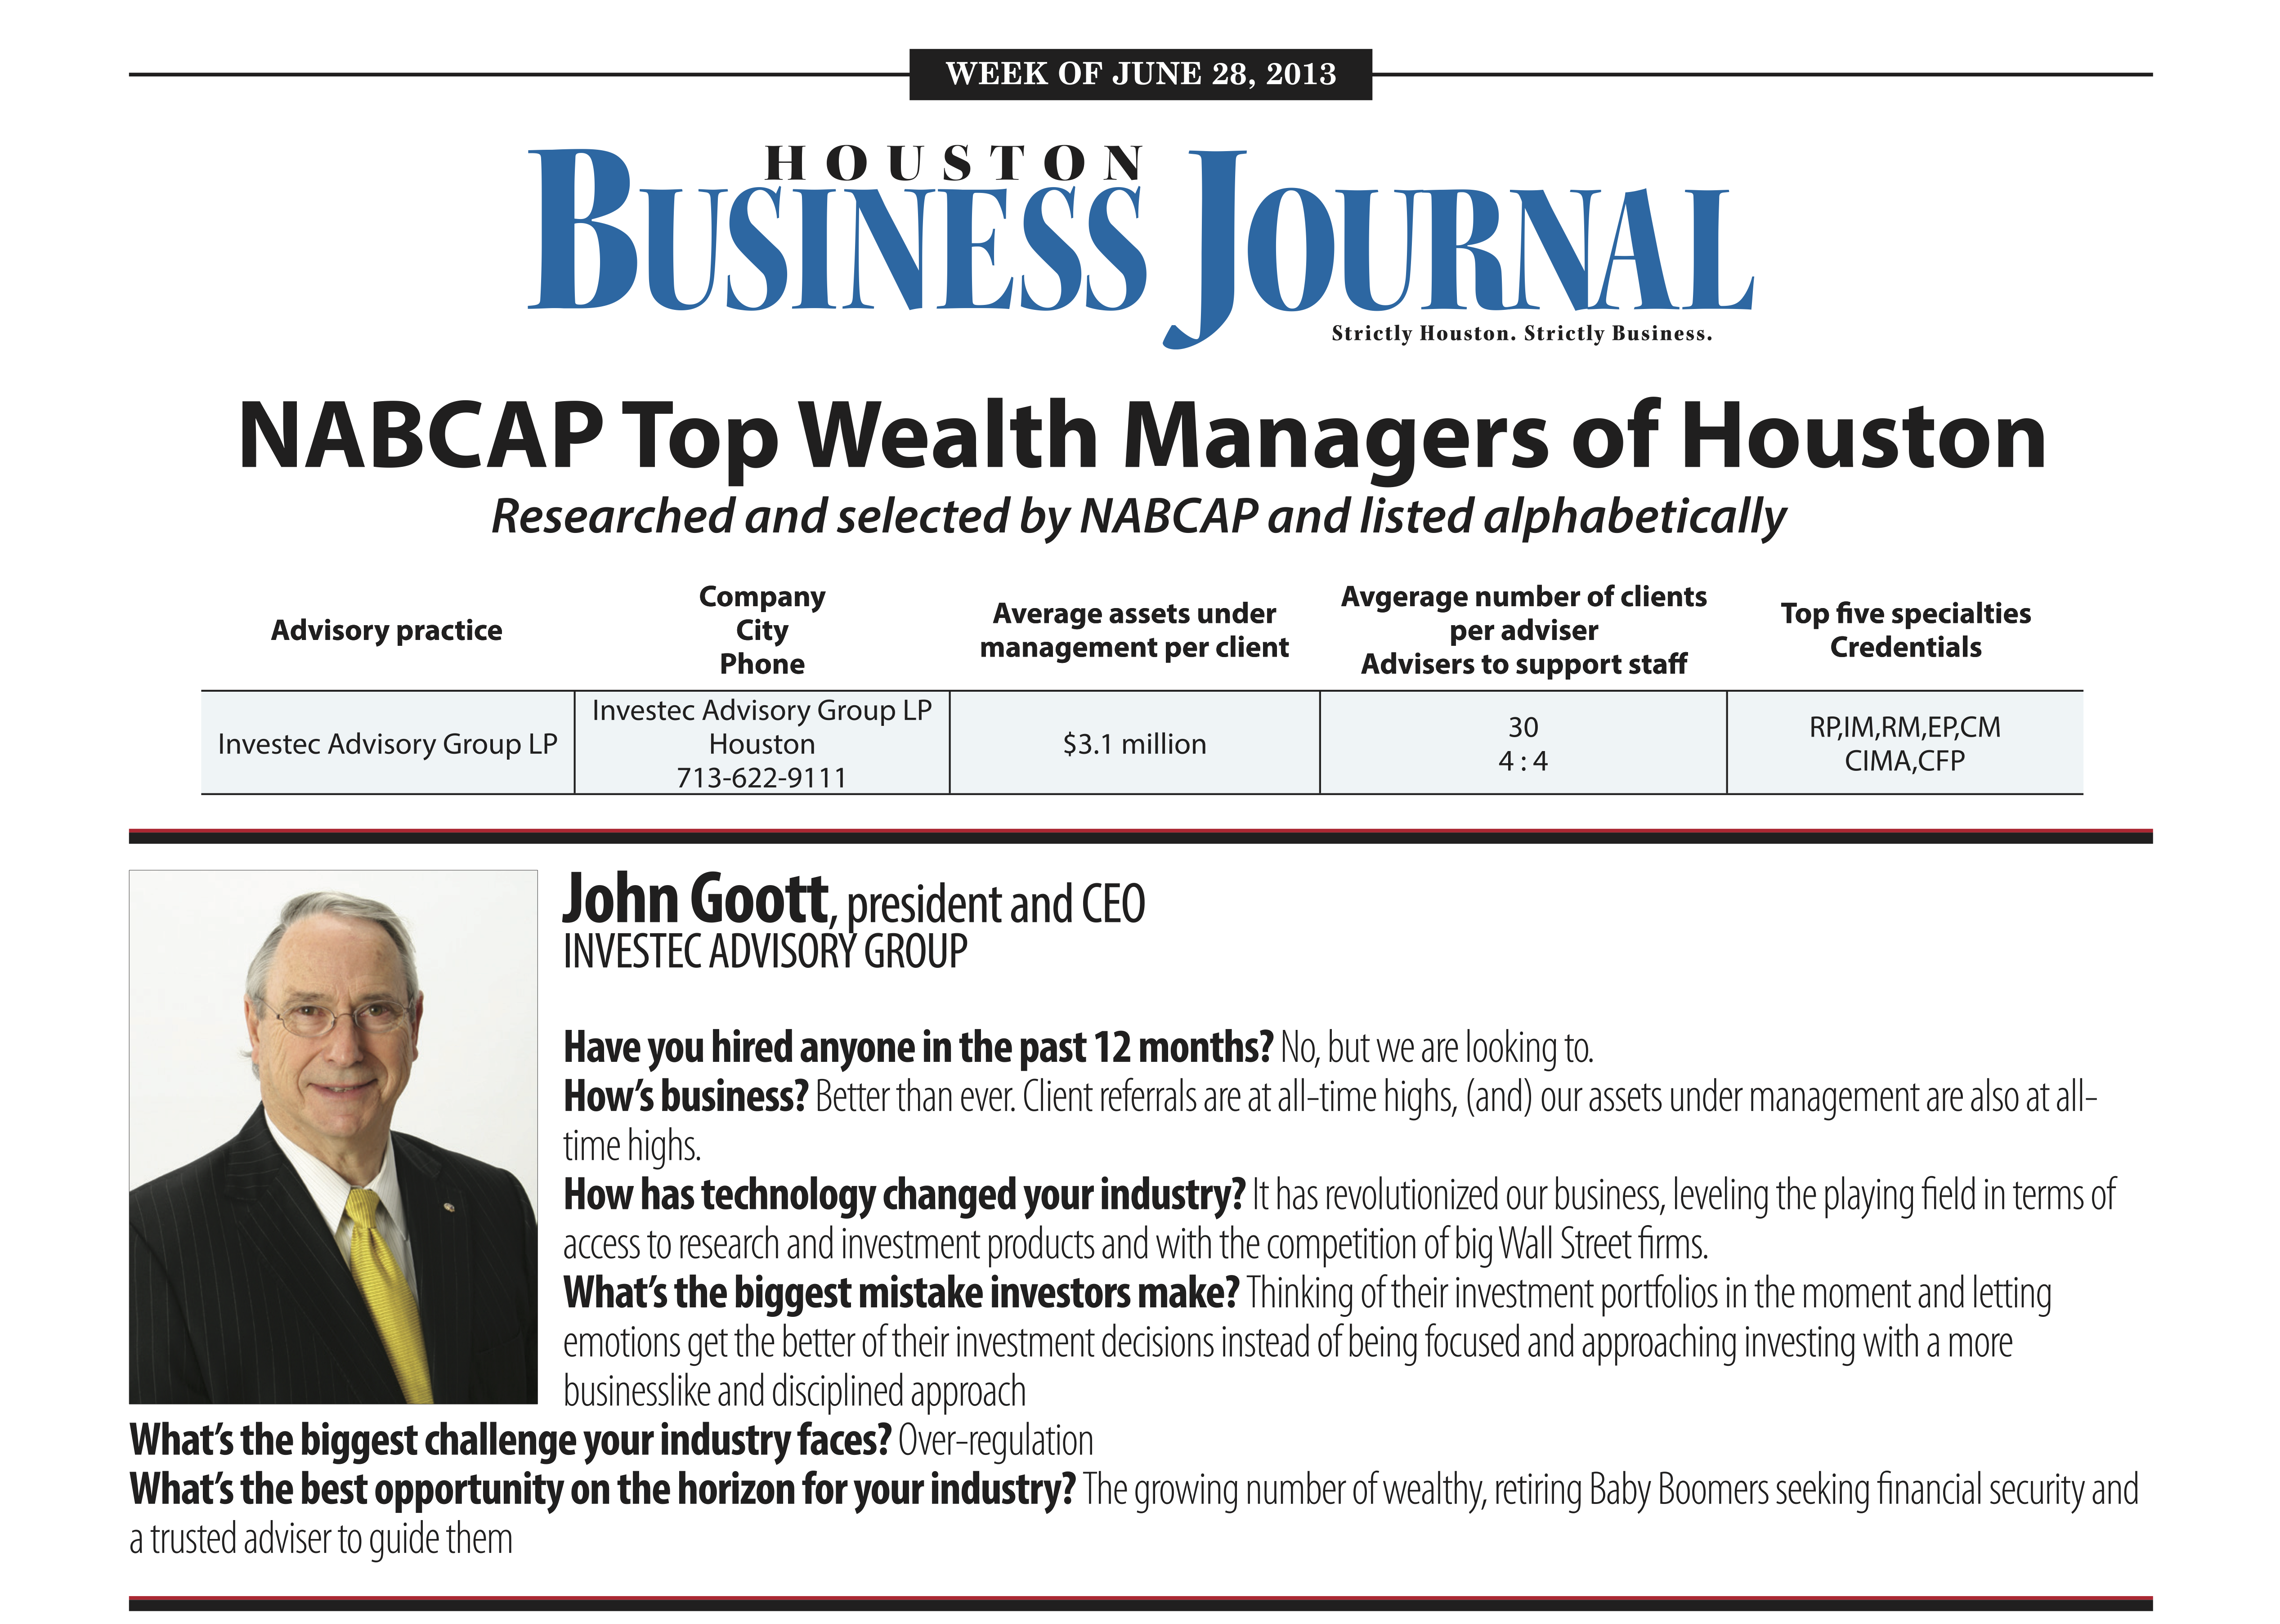 Investec - Houston Business Journal NABCAP Top Wealth Managers of Houston, 2013